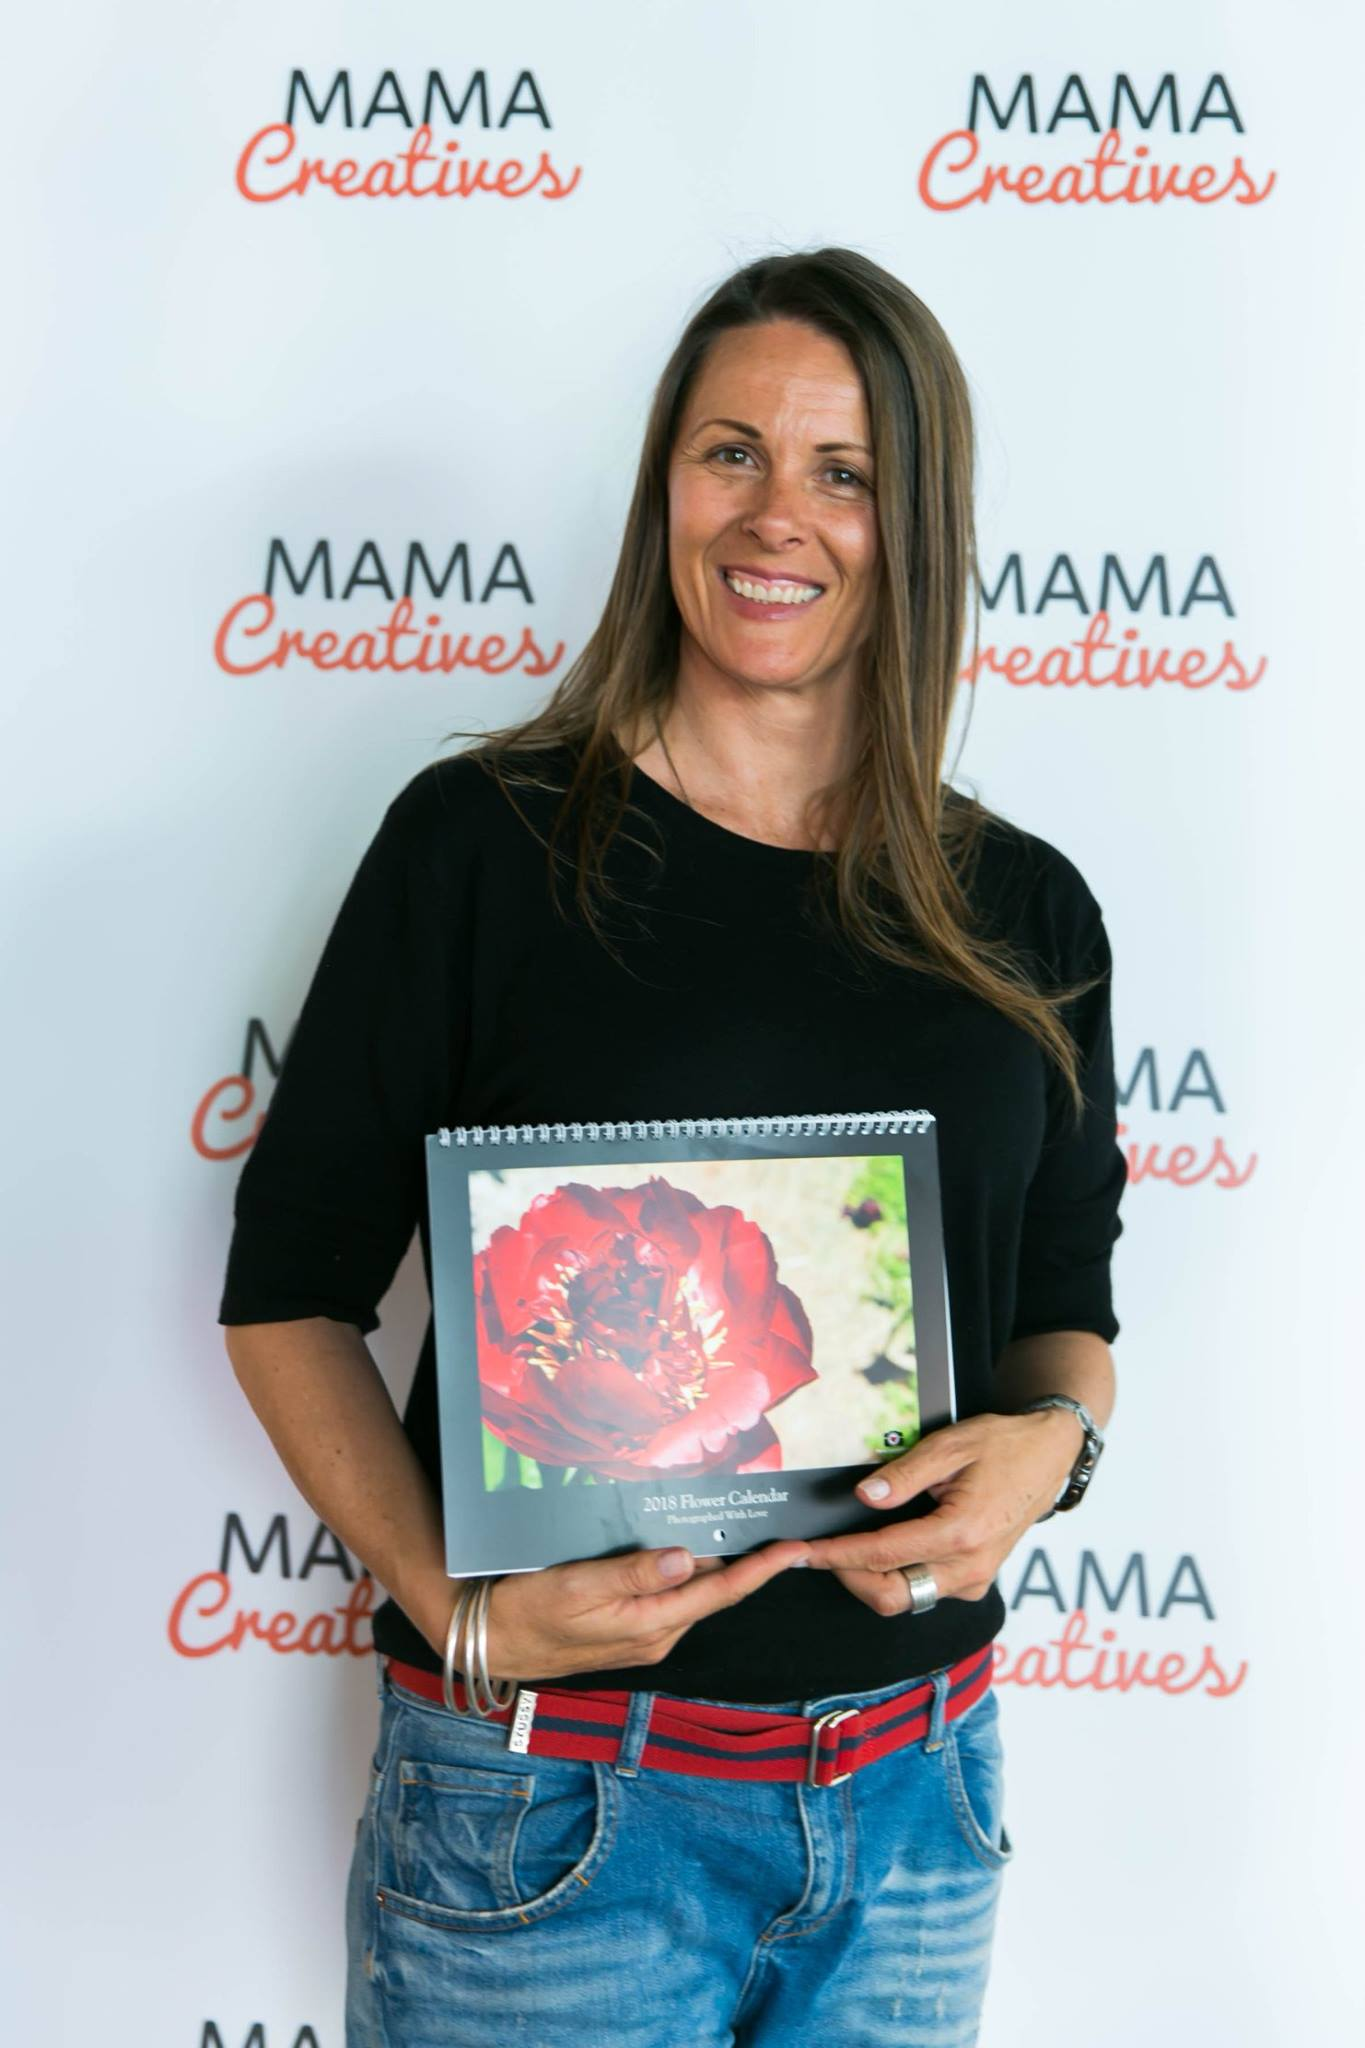 Congratulations to our lucky winner of this lovely 2018 Flower Calendar, generously donated by Mariam Eliza Mohd Johari from Photographed With Love, for our Creative Mama Workshop in support of PANDA Awareness Week.   More details here: http://www.photographedwithlove.com/home-page